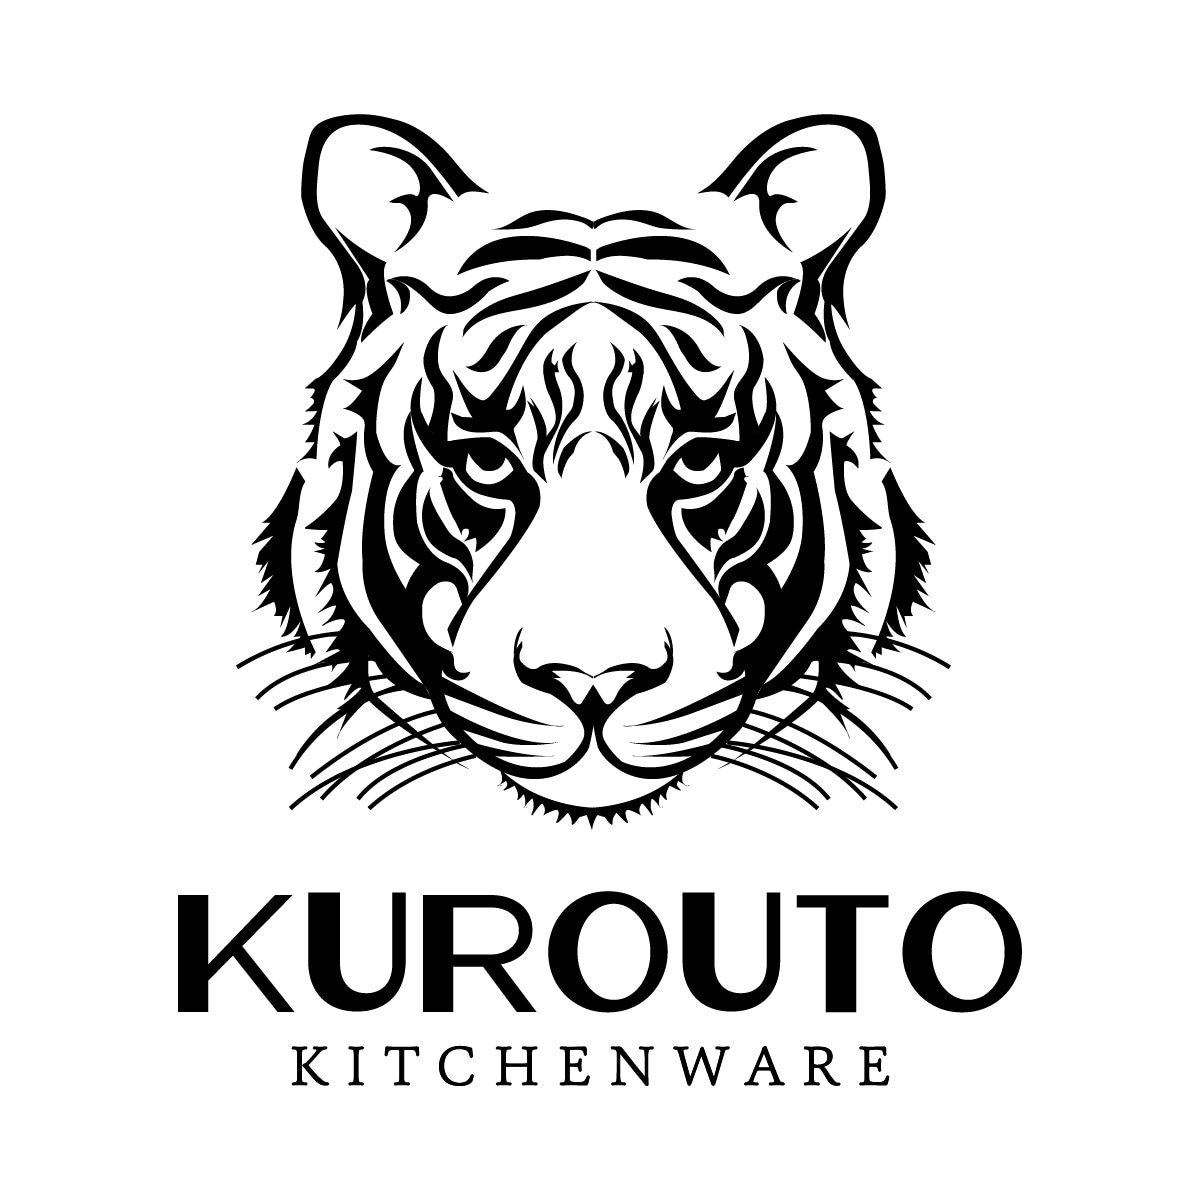 Kurouto Kitchenware promo codes